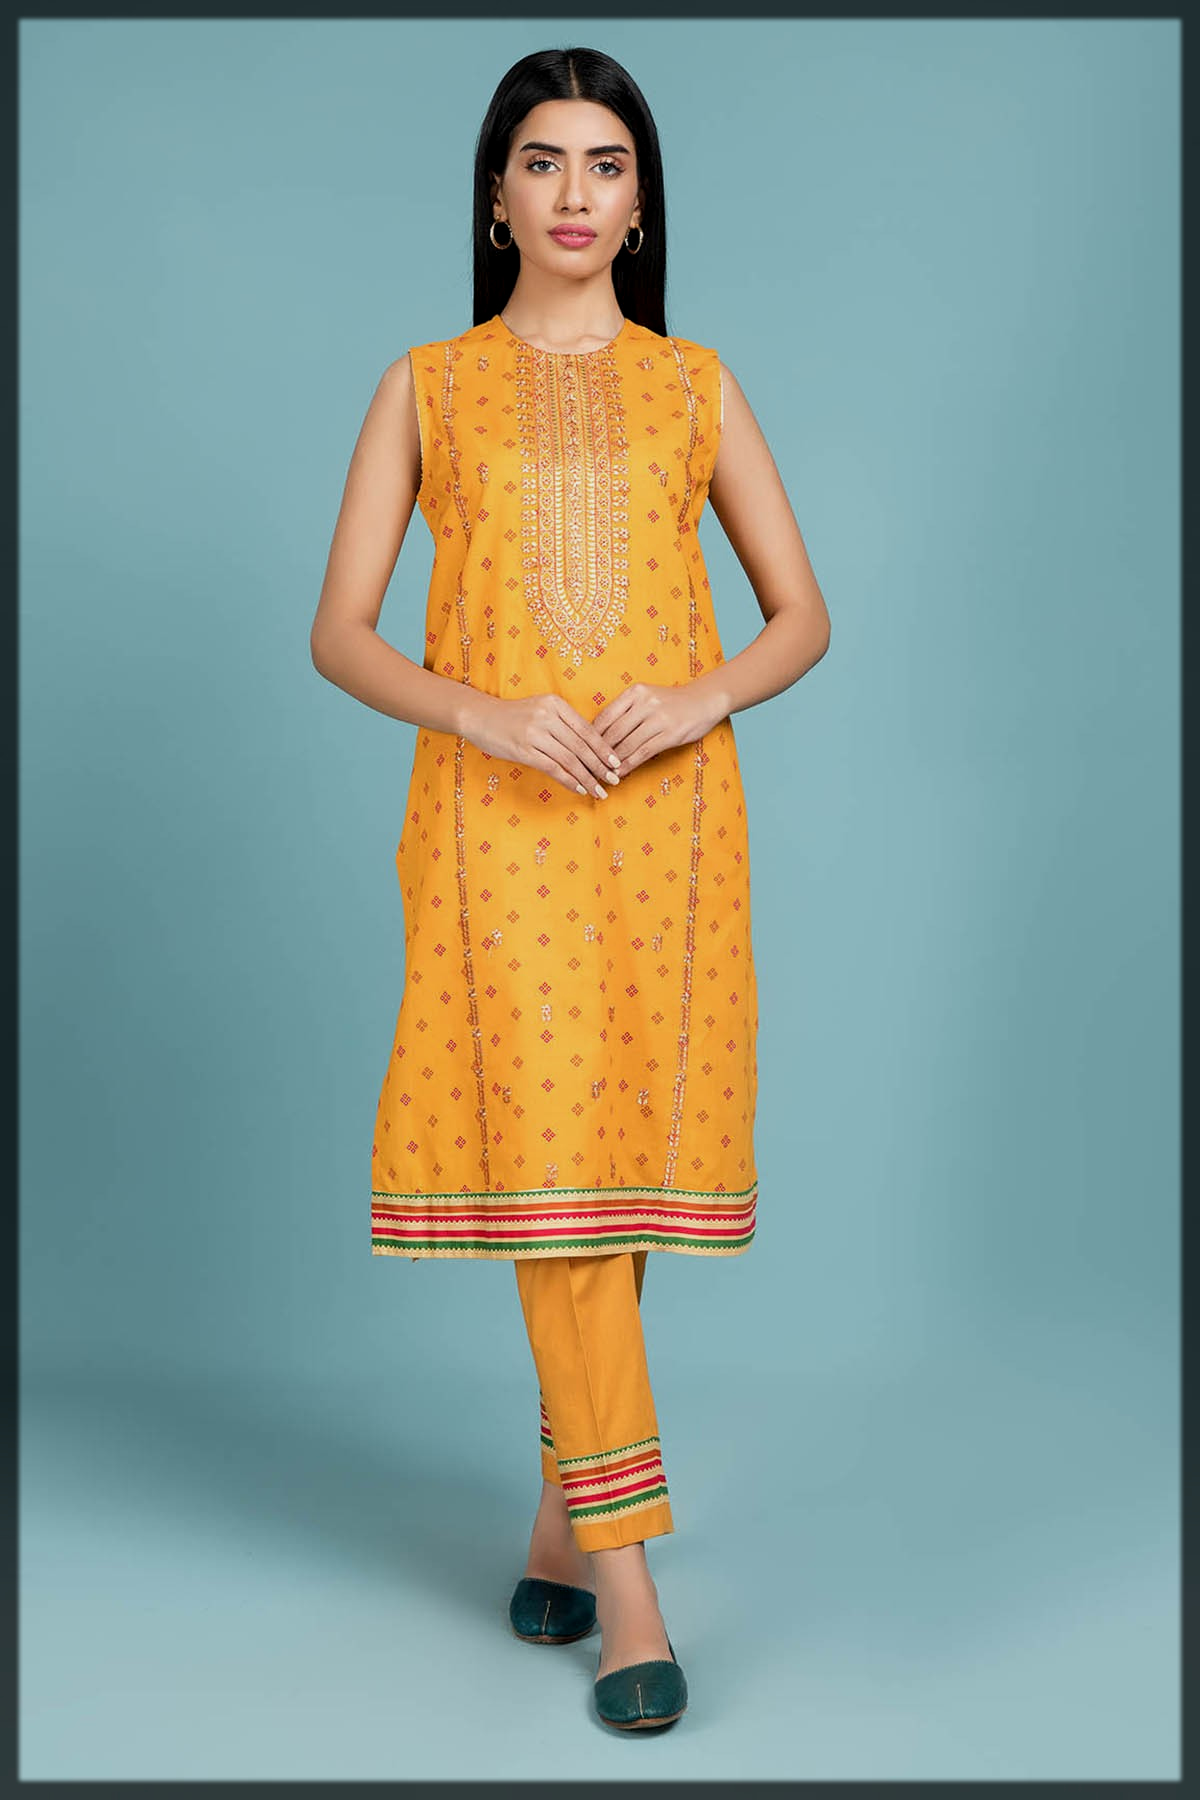 chic stylish kurta